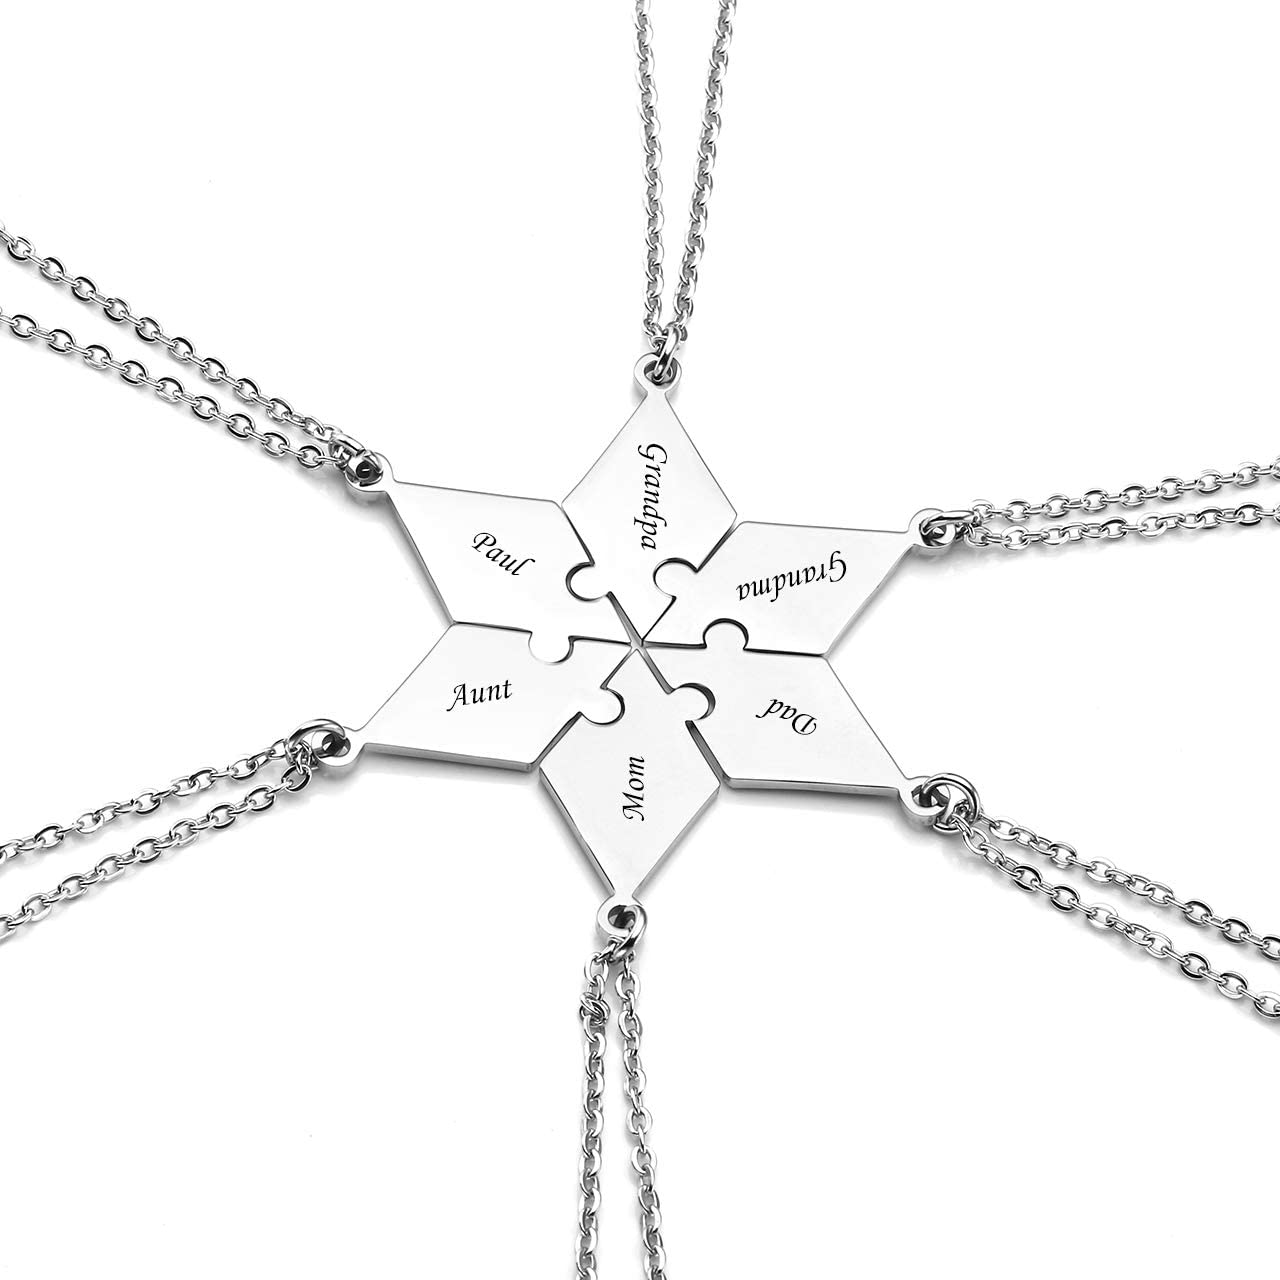 Personalized Star Hexagram Star Puzzle BFF Necklaces Engraving Puzzles Matching Pendant Jewelry for 6 Friends Families BFF Friendship Brothers Sisters Custom Gifts